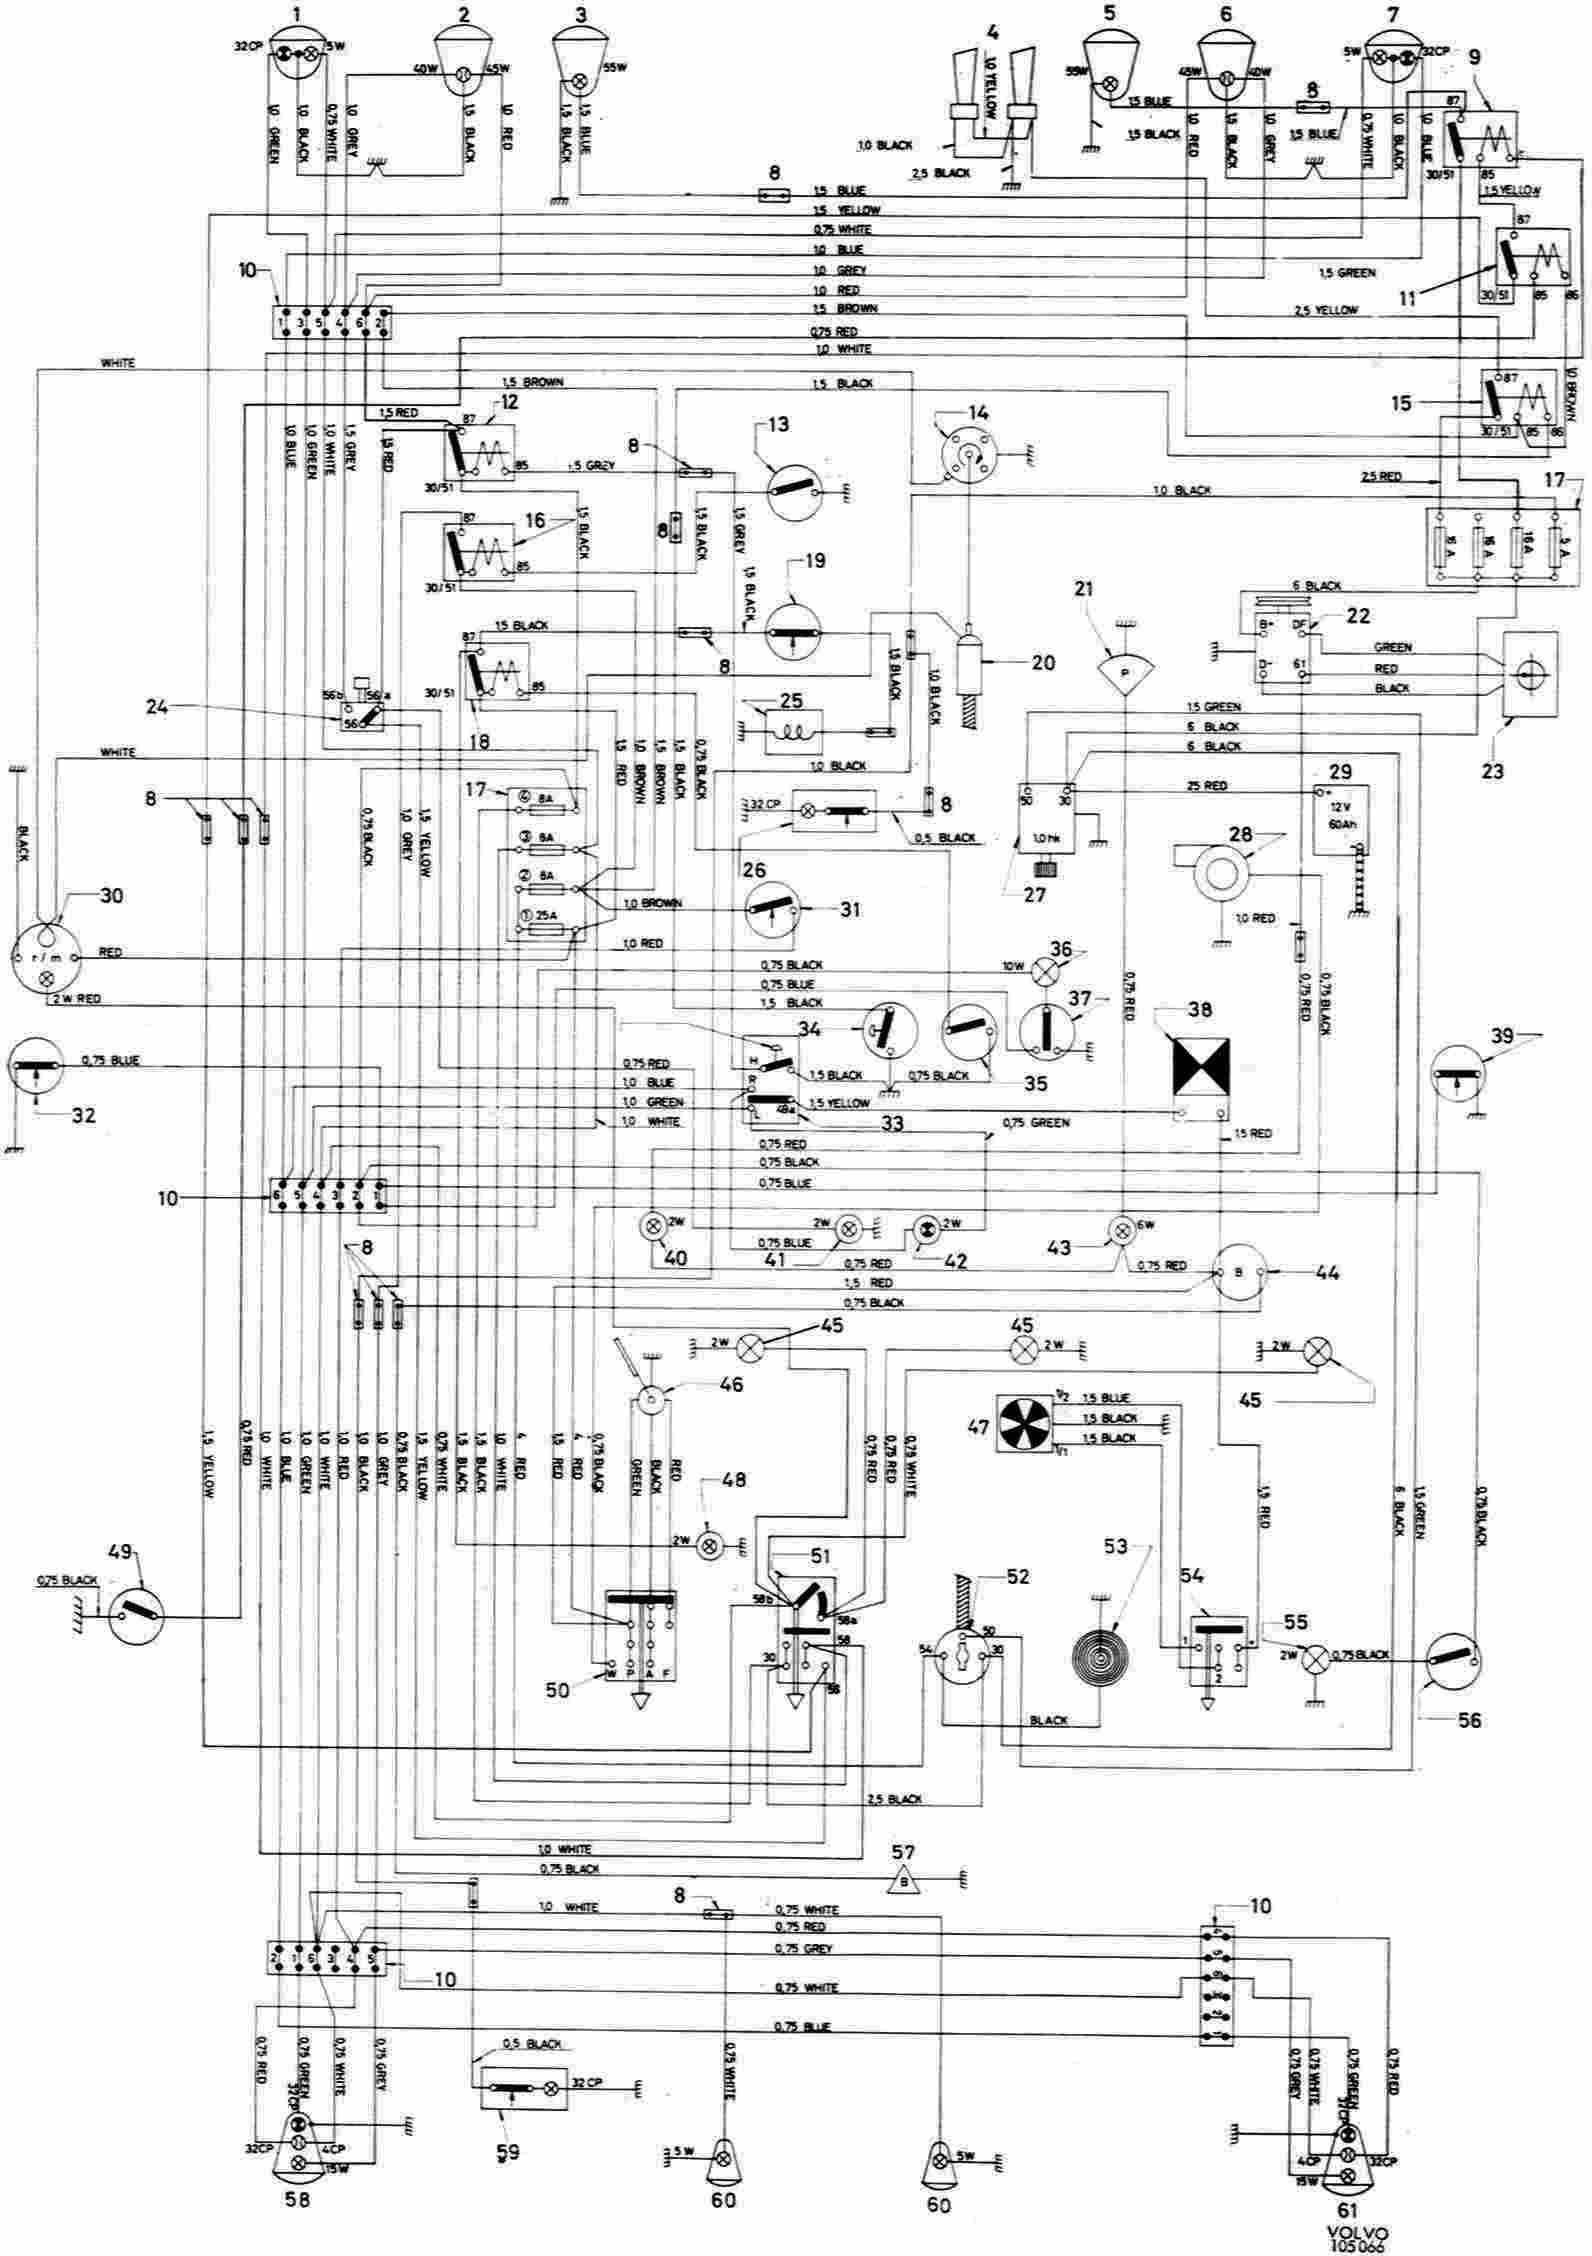 hight resolution of volvo wire diagram wiring diagram technic volvo 340 wiring diagram